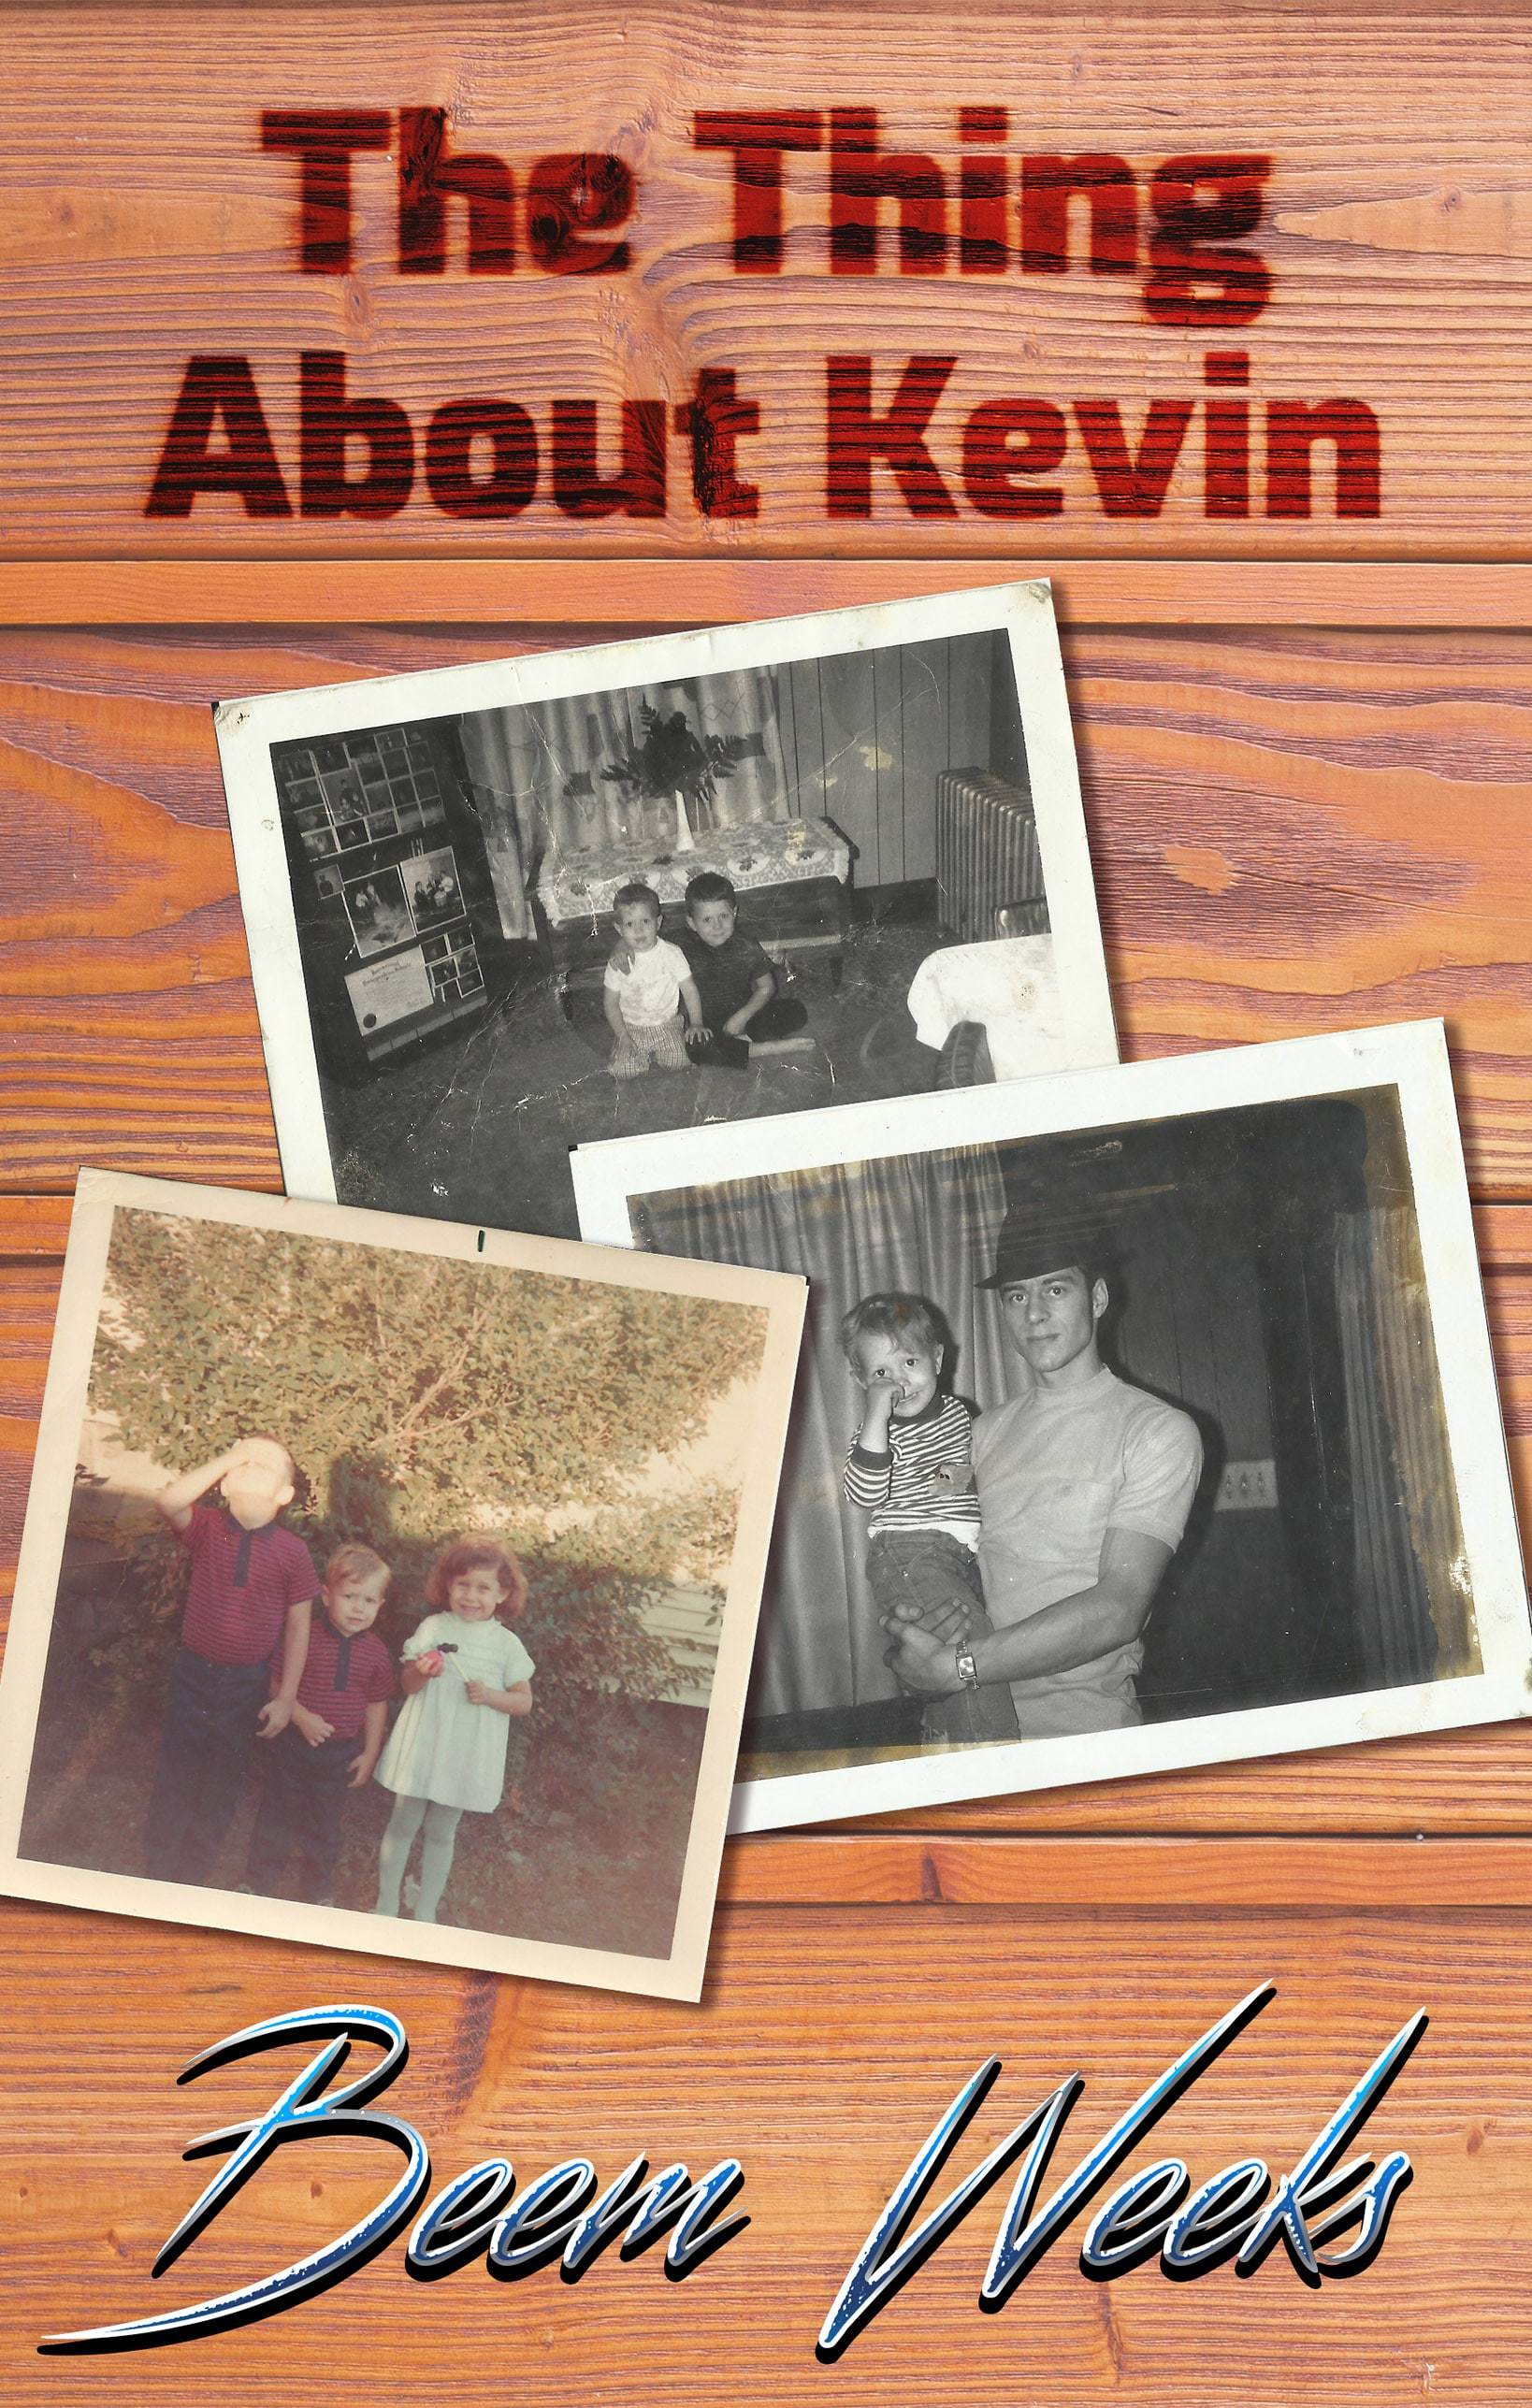 The Thing About Kevin by Beem Weeks